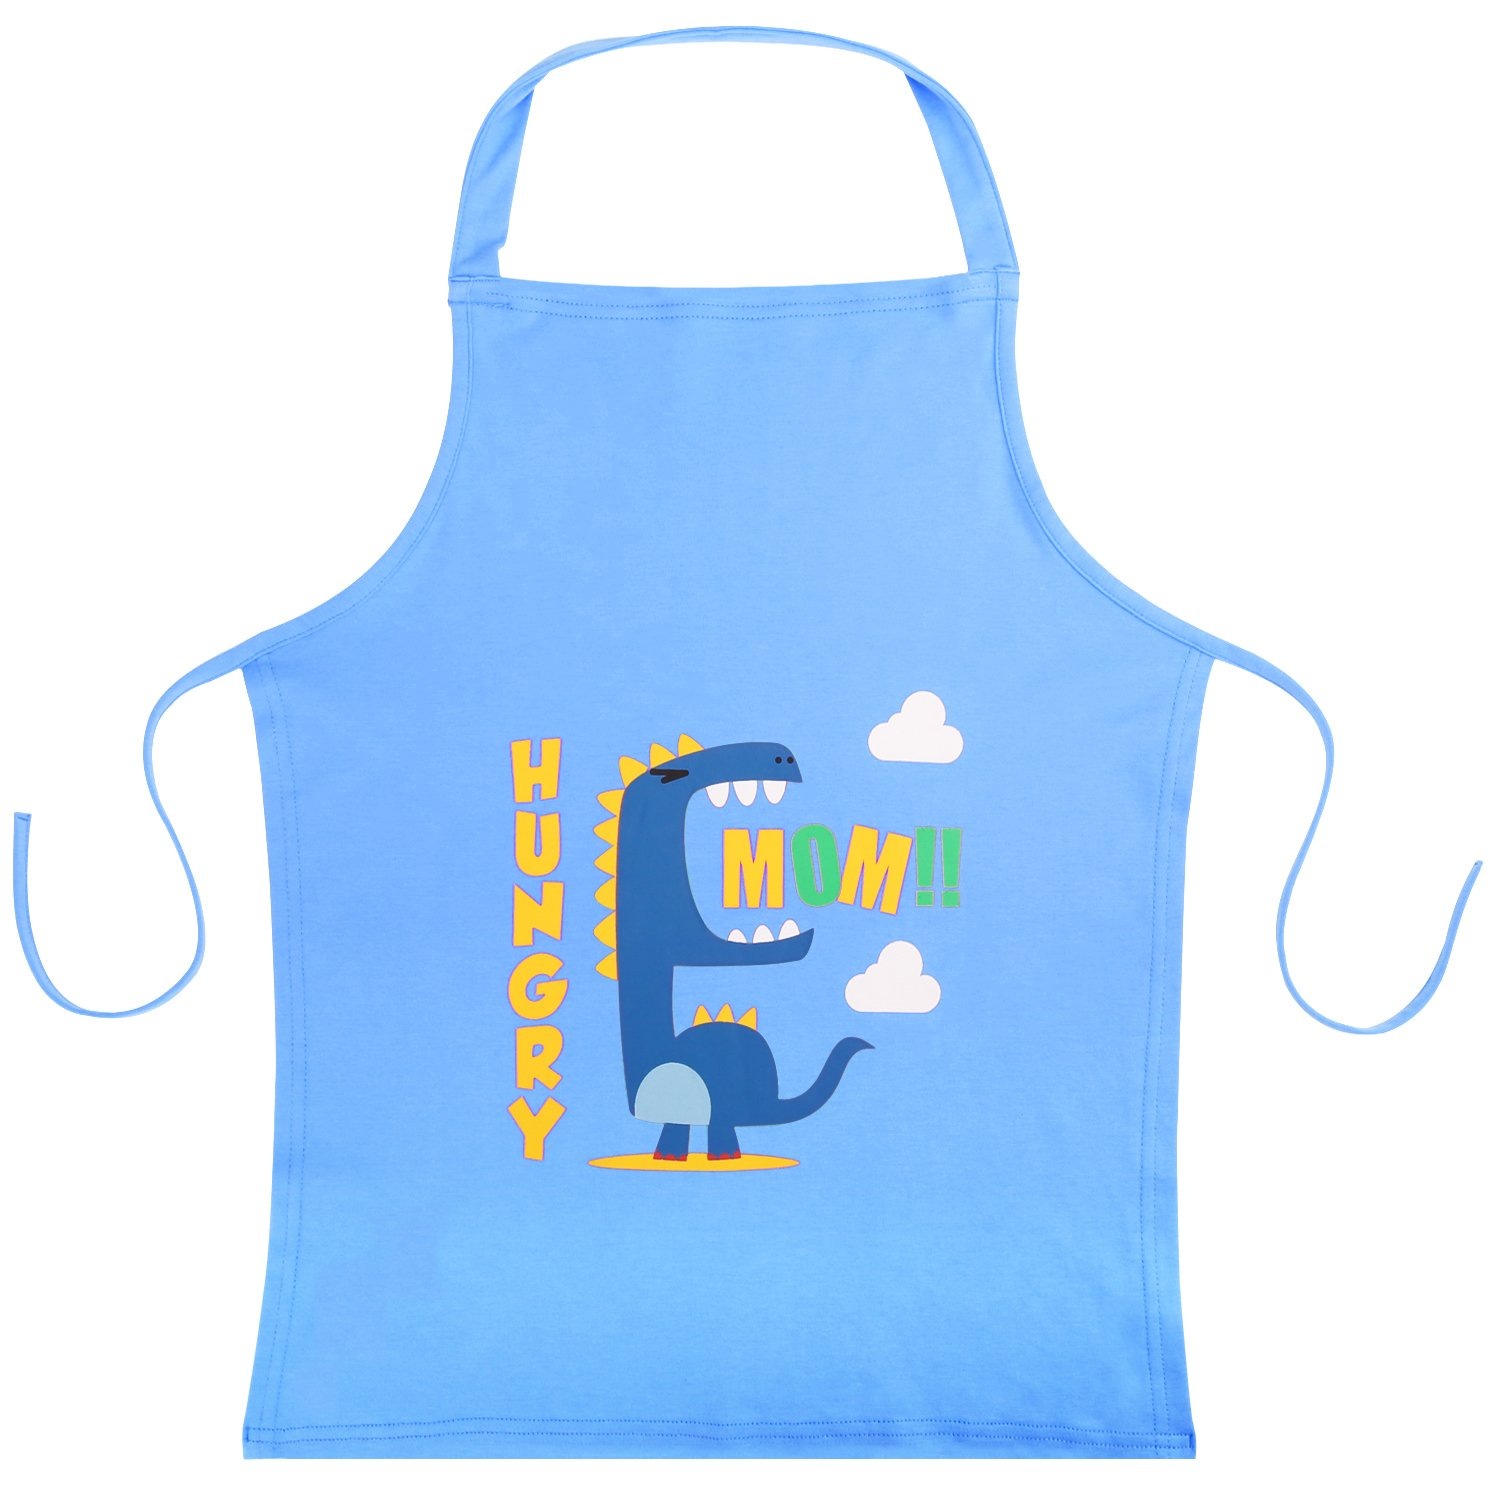 "Nuovoware Kids Apron, Cute Cartoon Cotton Child Smock Reusable Small Apron 22"" x 18"" for Cooking, Painting, Crafts and Classroom - Blue"